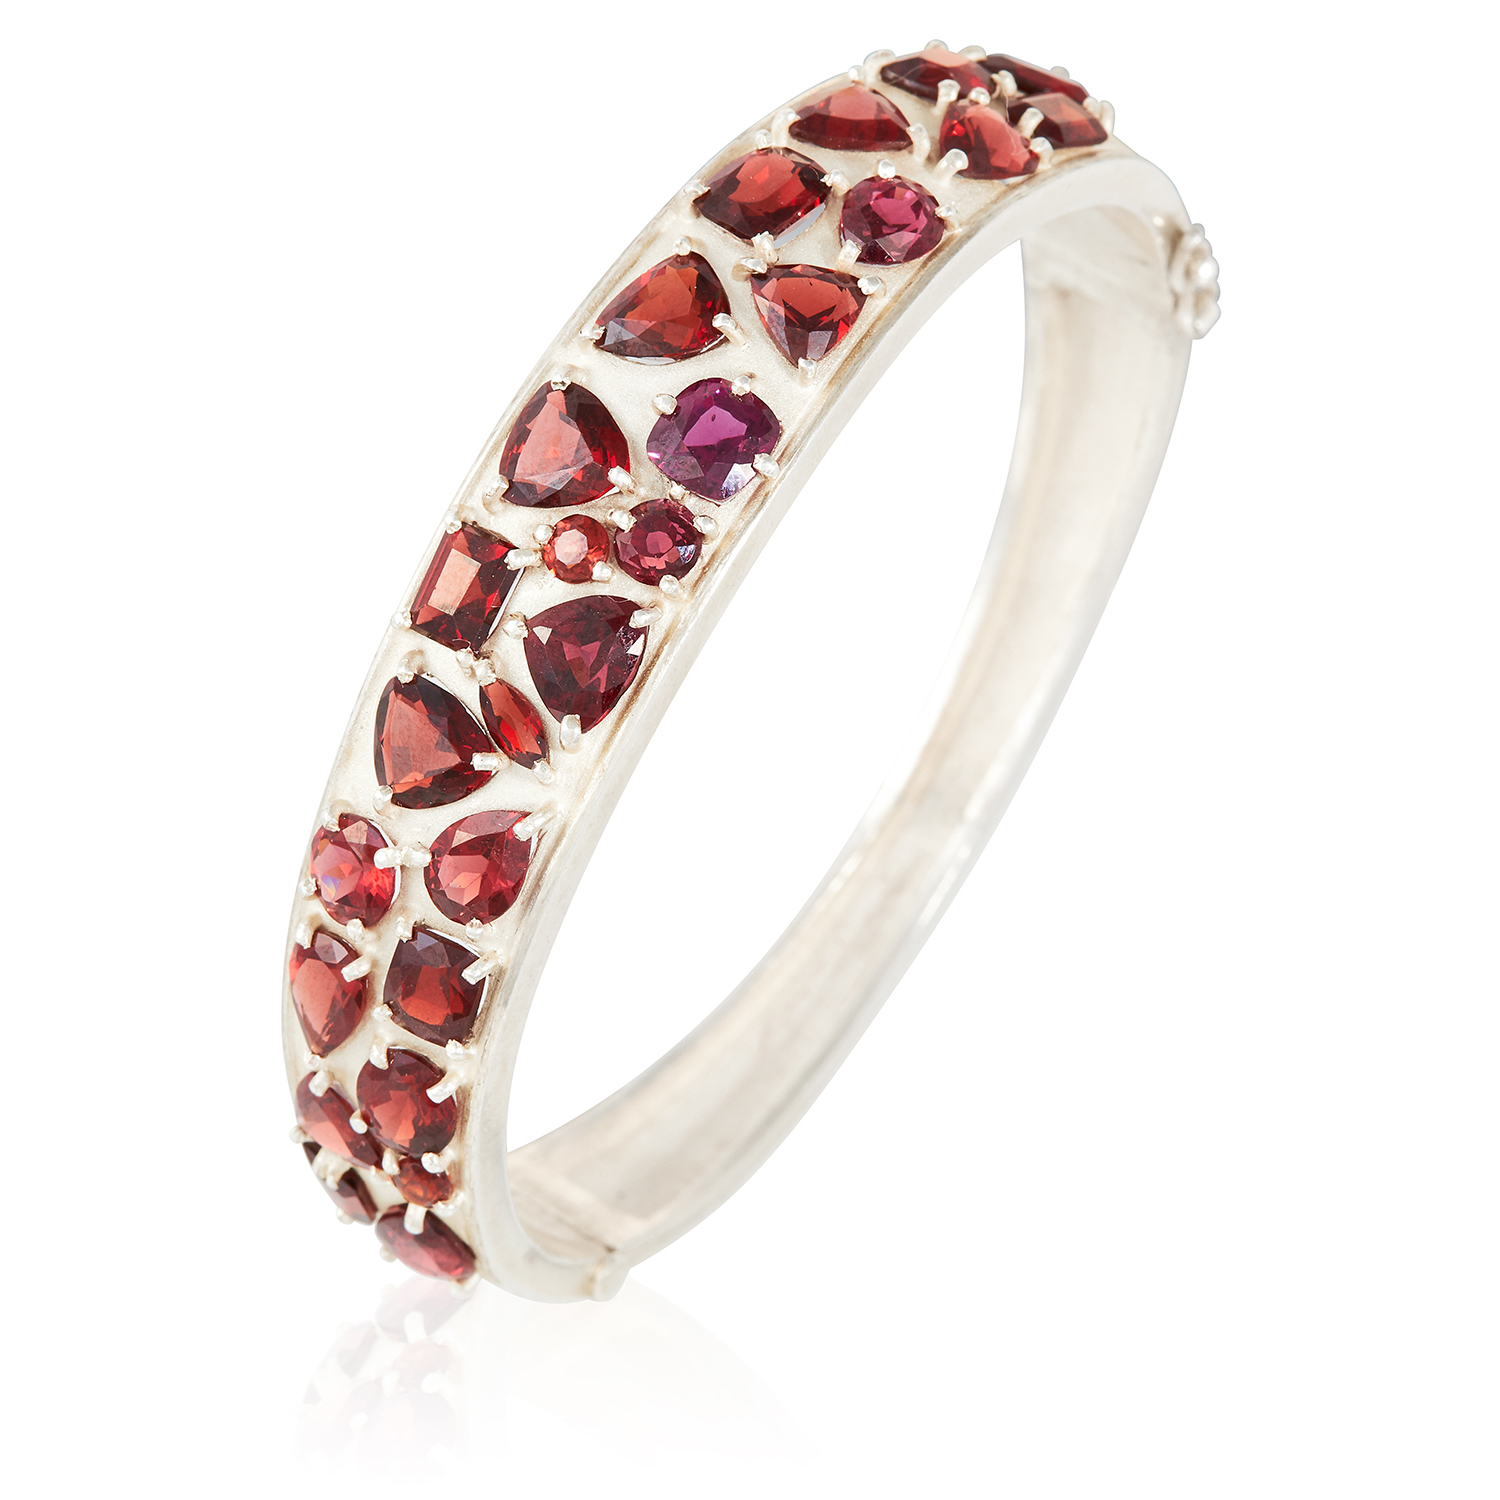 A GARNET BANGLE in sterling silver, set with round, pear, cushion and emerald cut garnets. 6cm inner